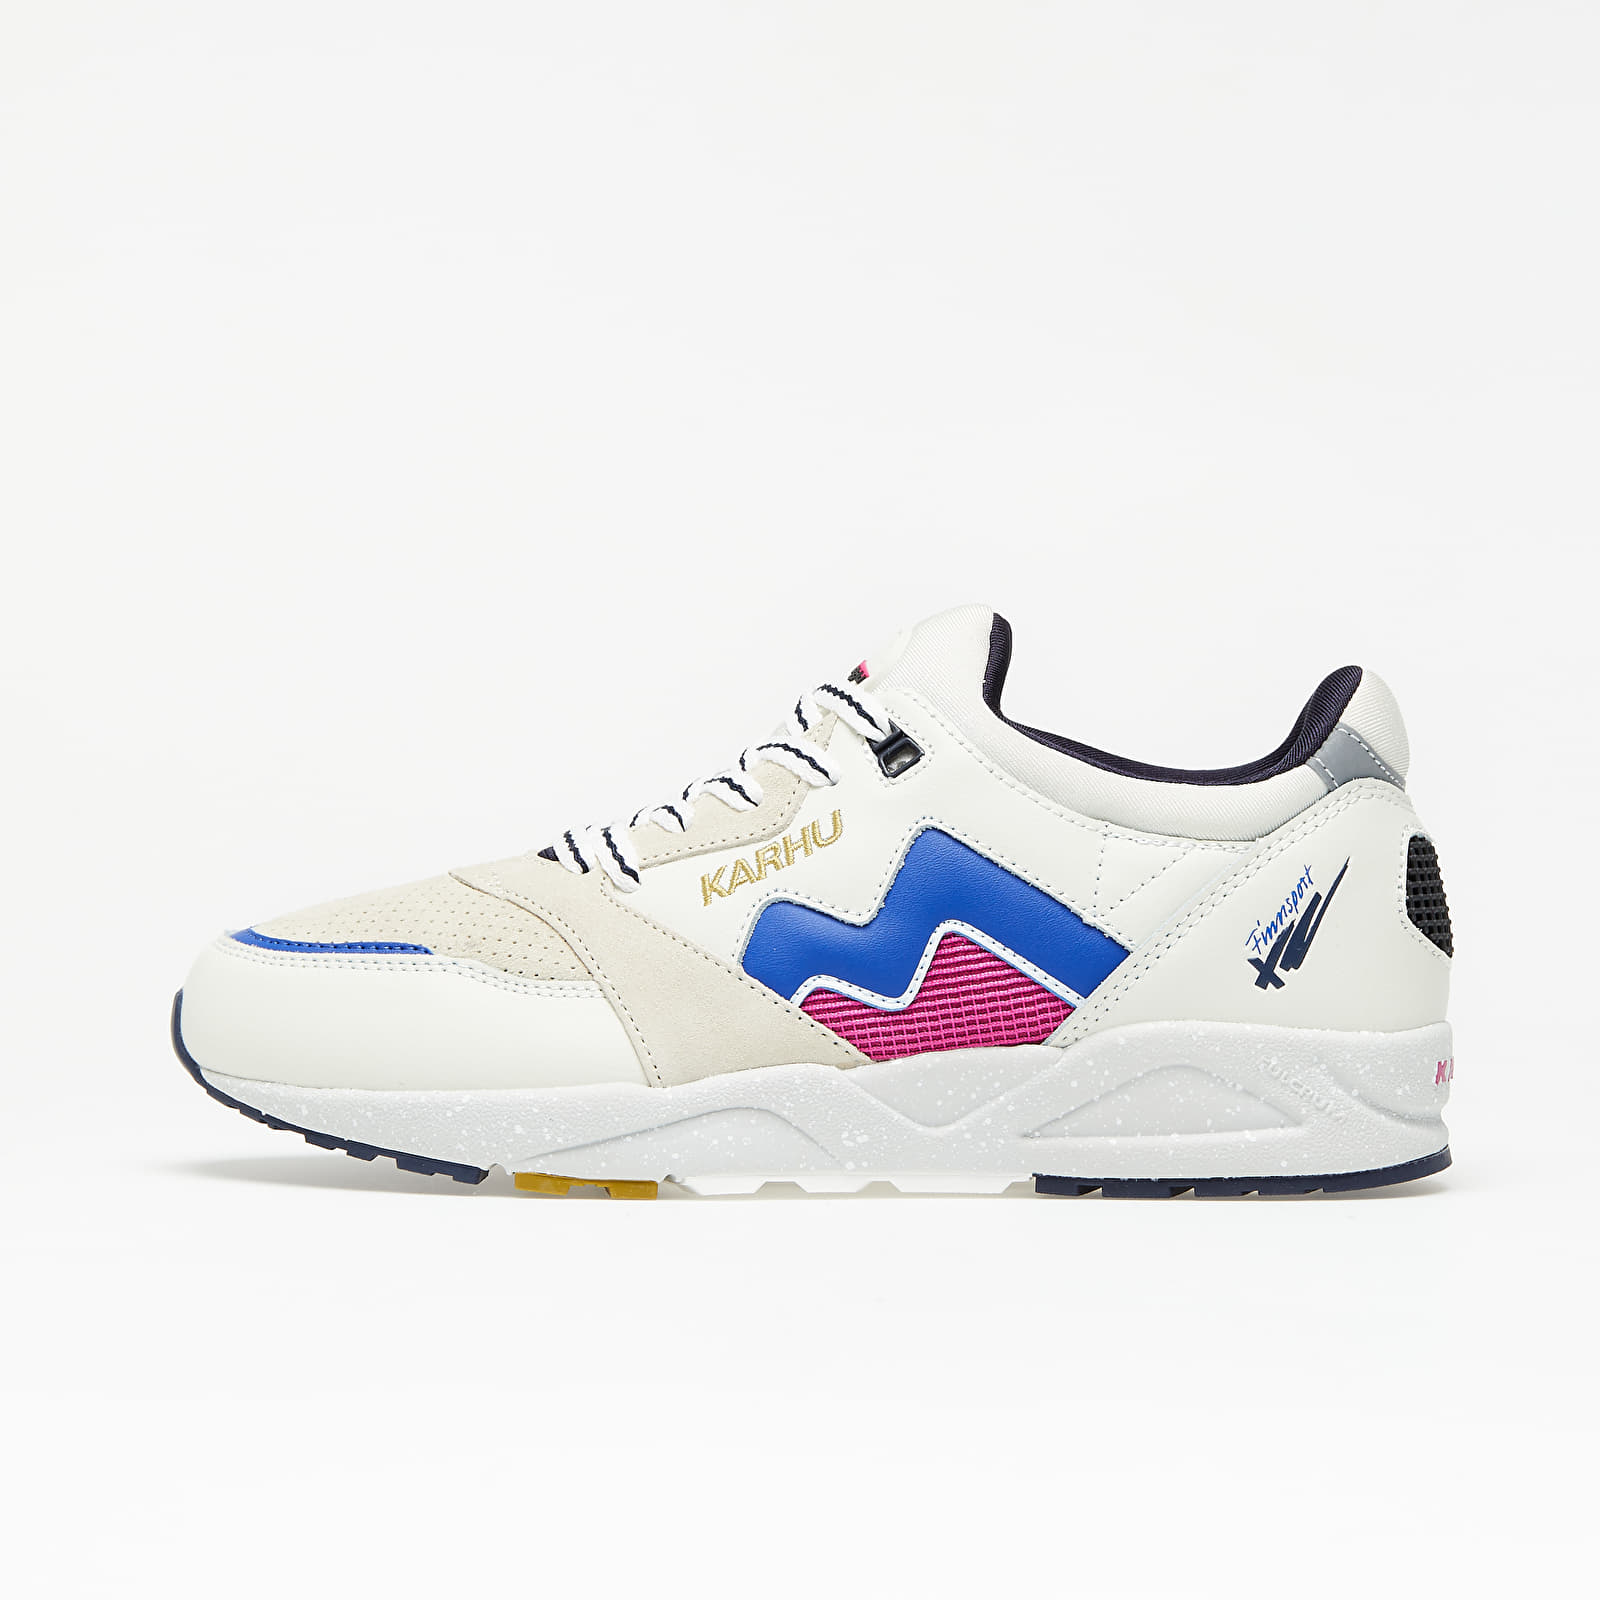 Karhu Aria 95 Lily White/ Surf the Web F803064